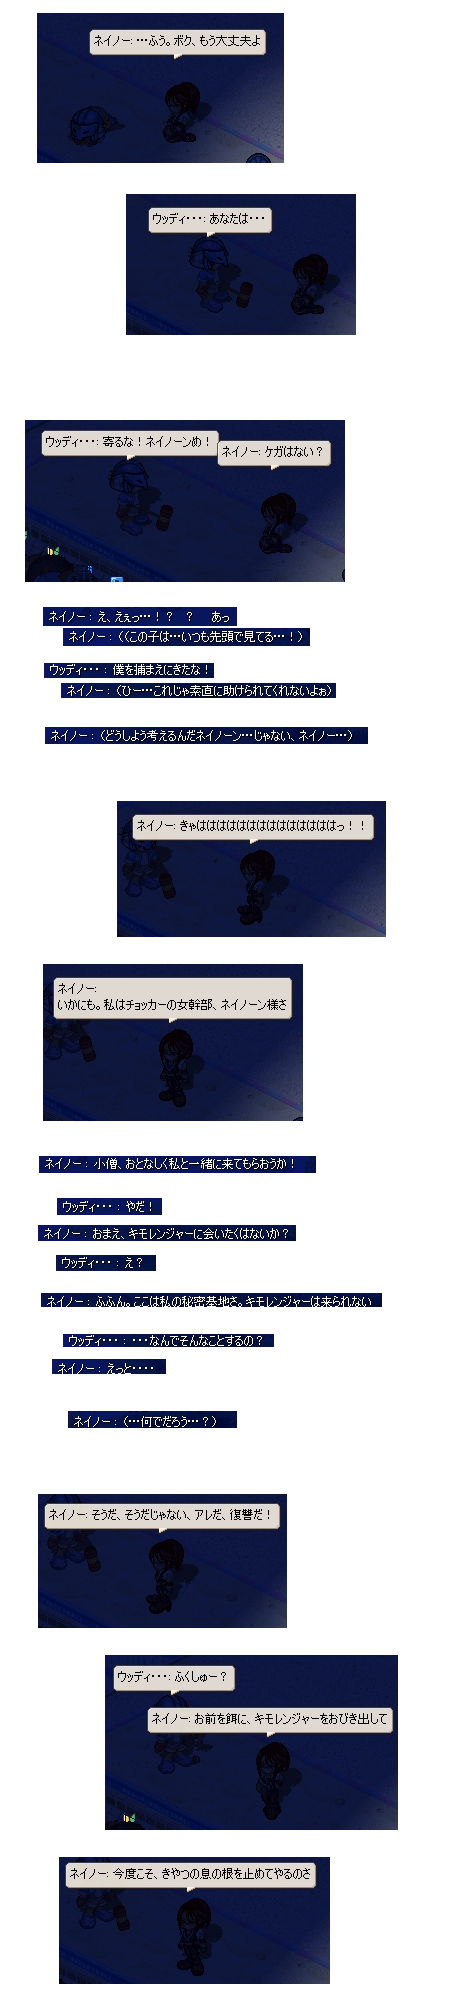 2007062521.png